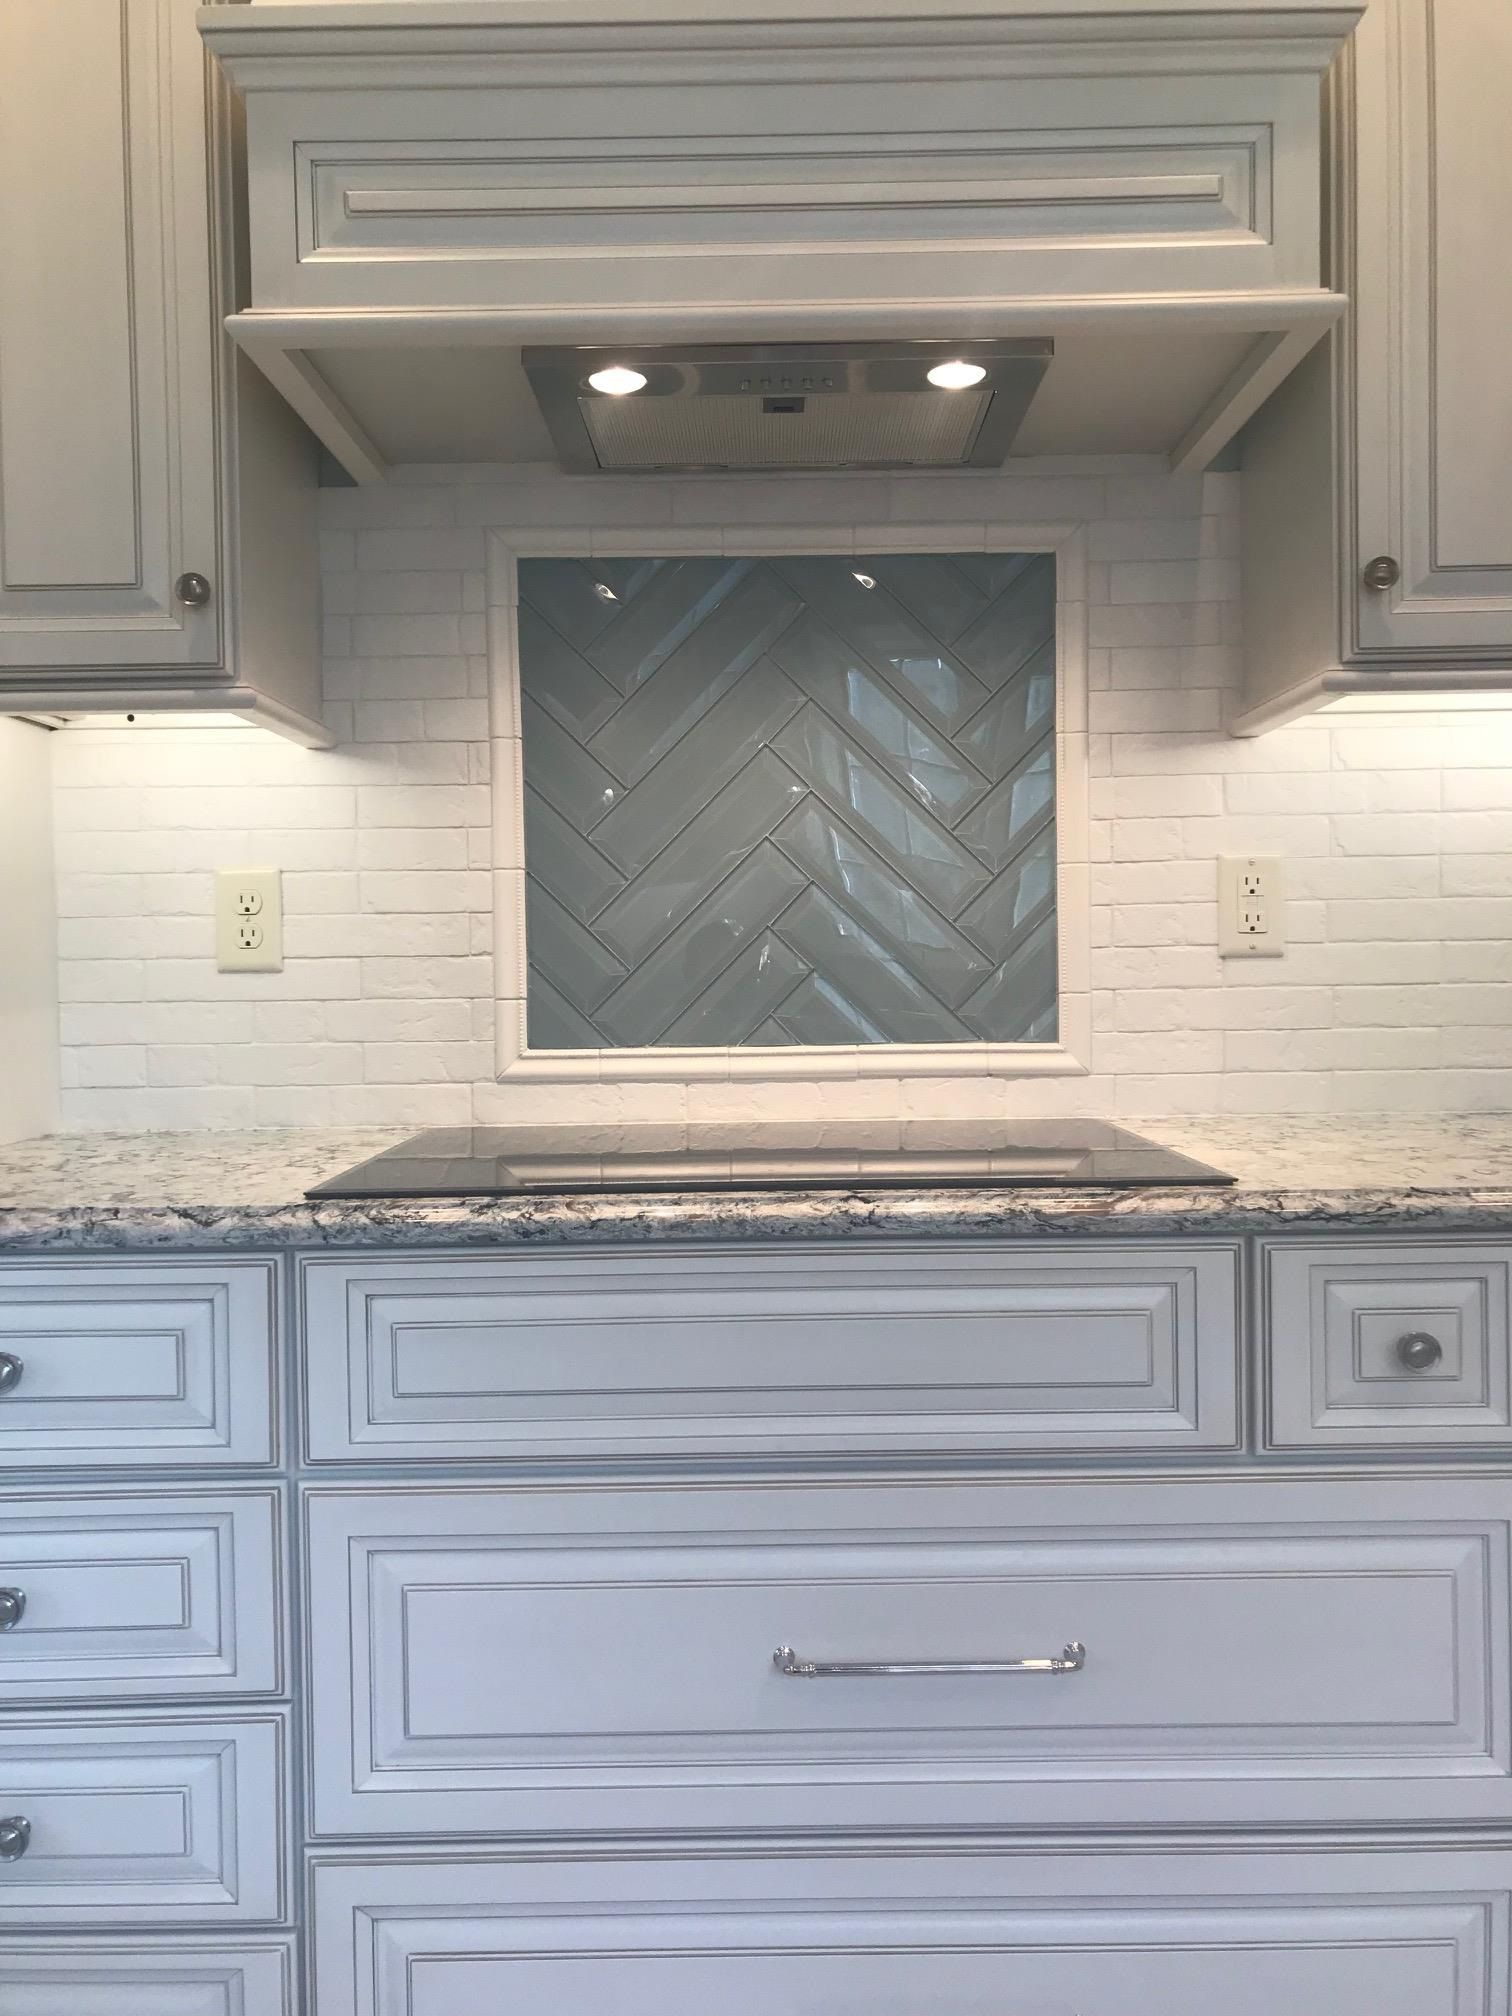 Kitchen Cabinets Bloomington Il 2020 In 2020 Kitchen Cabinets Cabinet Design Cabinet